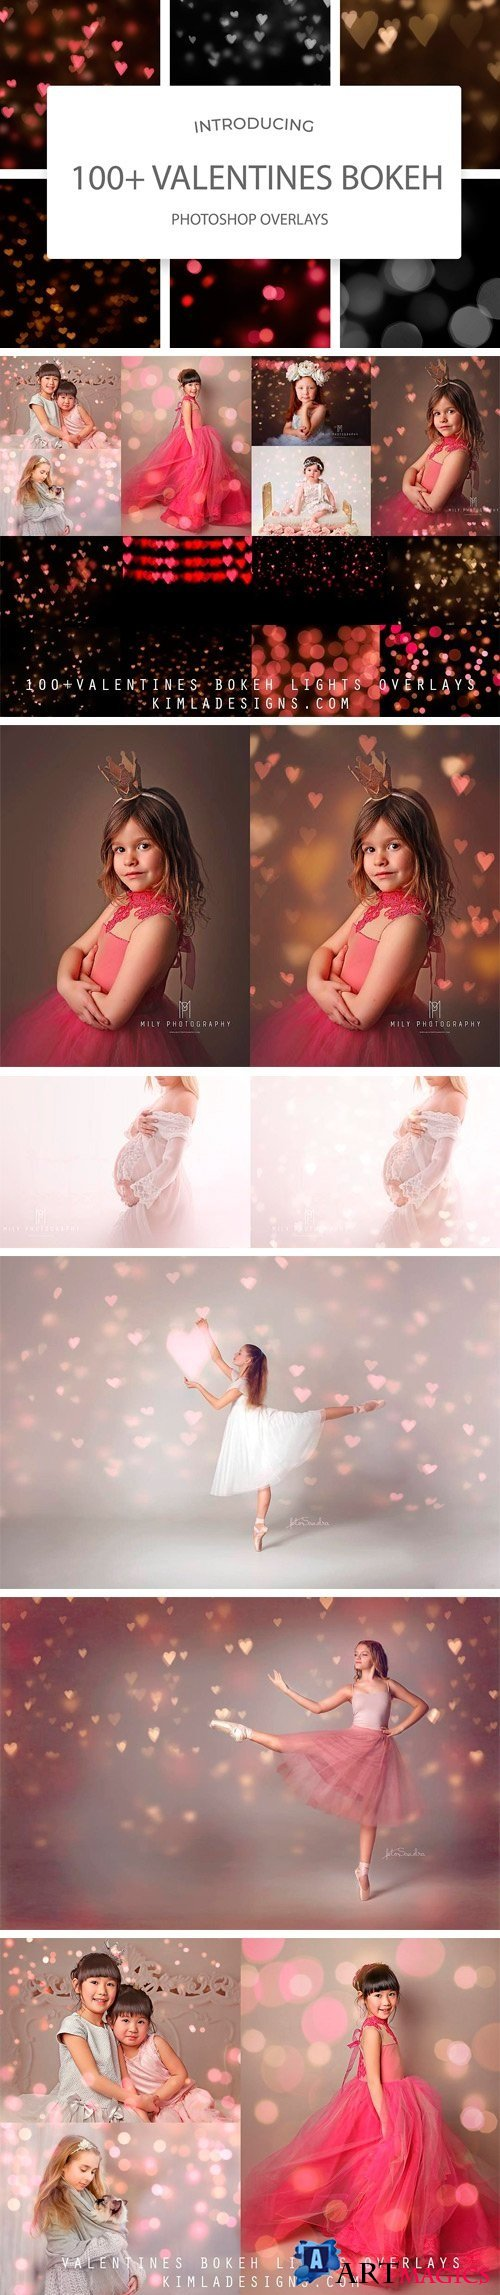 100 Valentines Bokeh Photo Overlays - 2266551